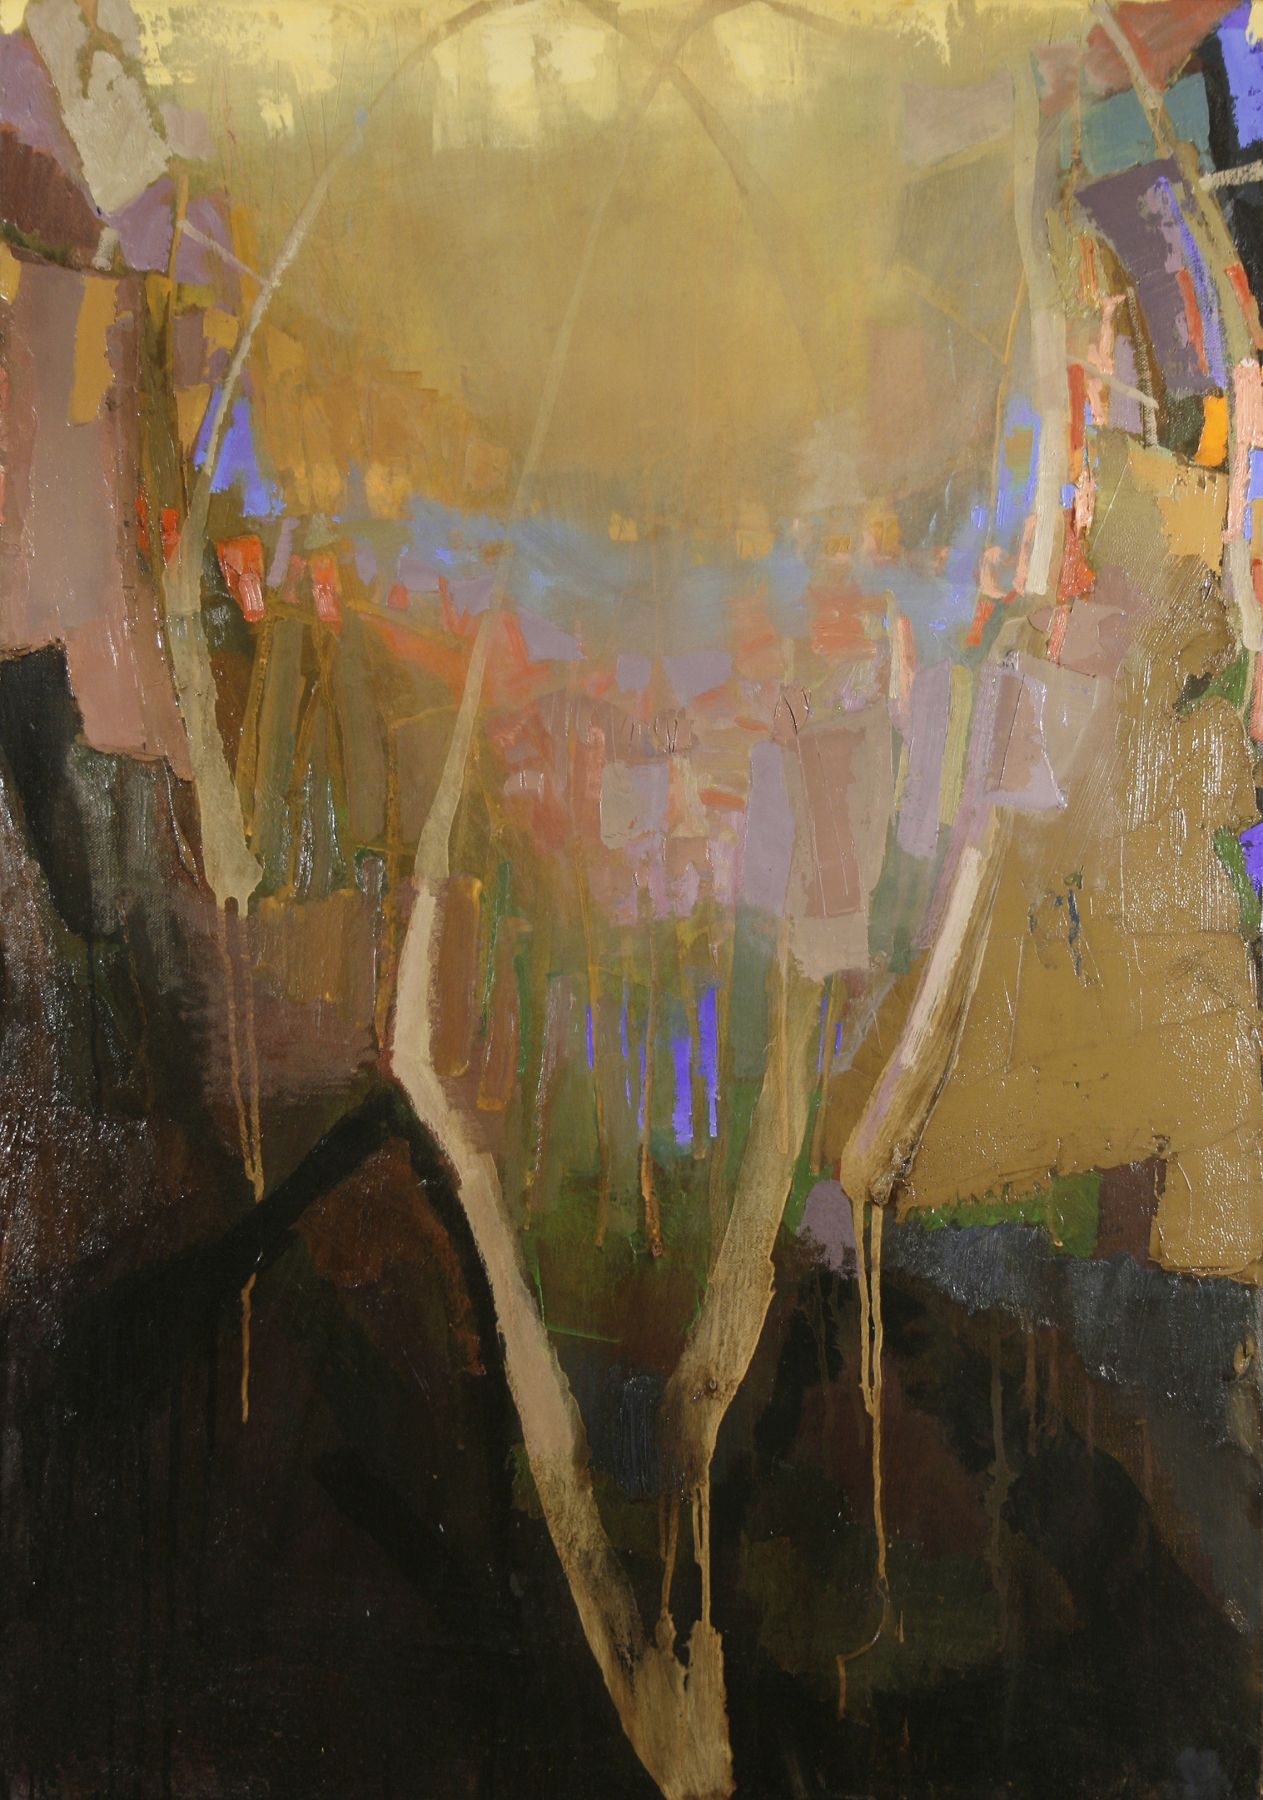 Brian Rutenberg, Tidesong 4 (SOLD), 2008, oil on linen, 36 x 25 inches